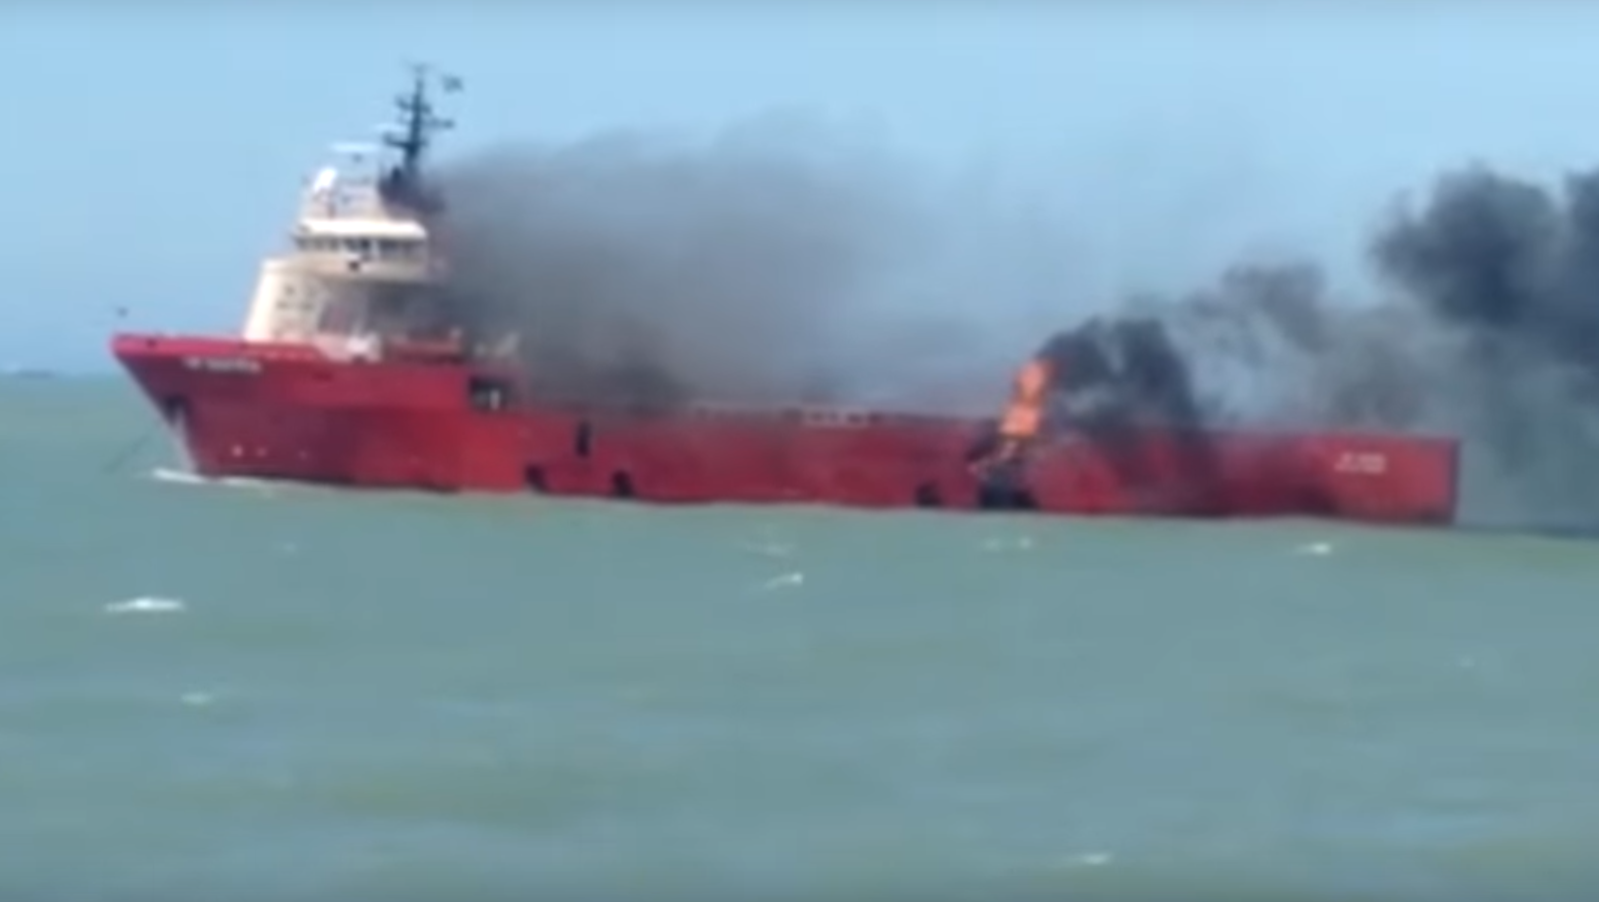 Video footage has emerged of the moment a vessel caught on fire